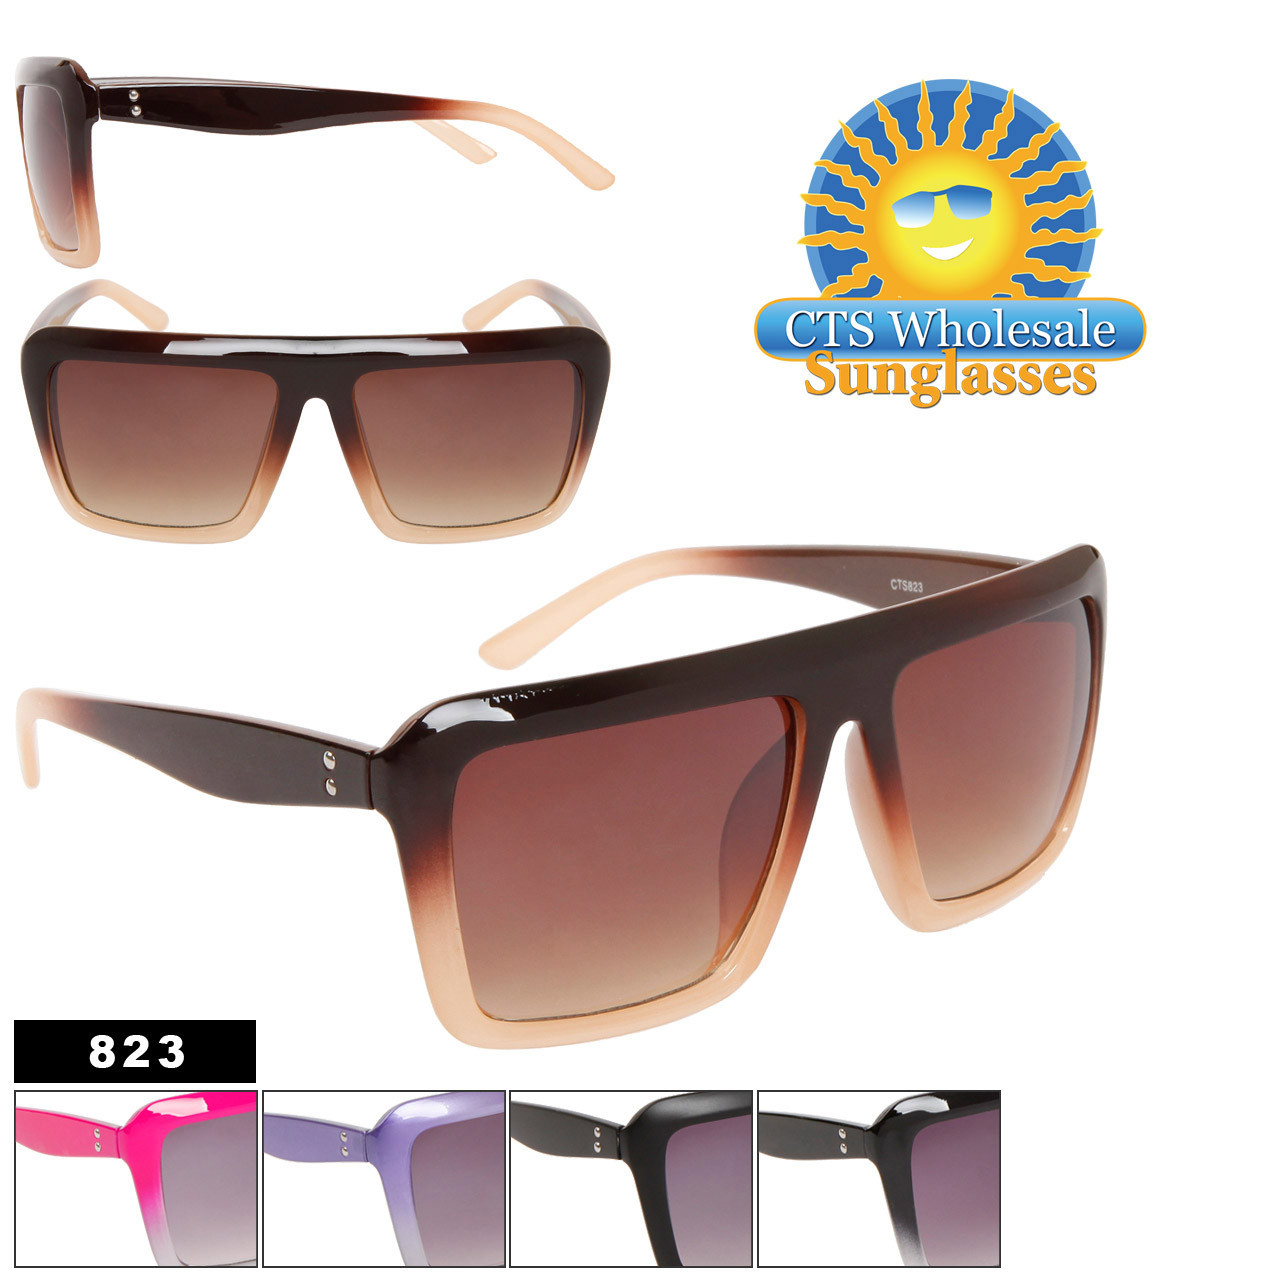 Square Lens Sunglasses! 823